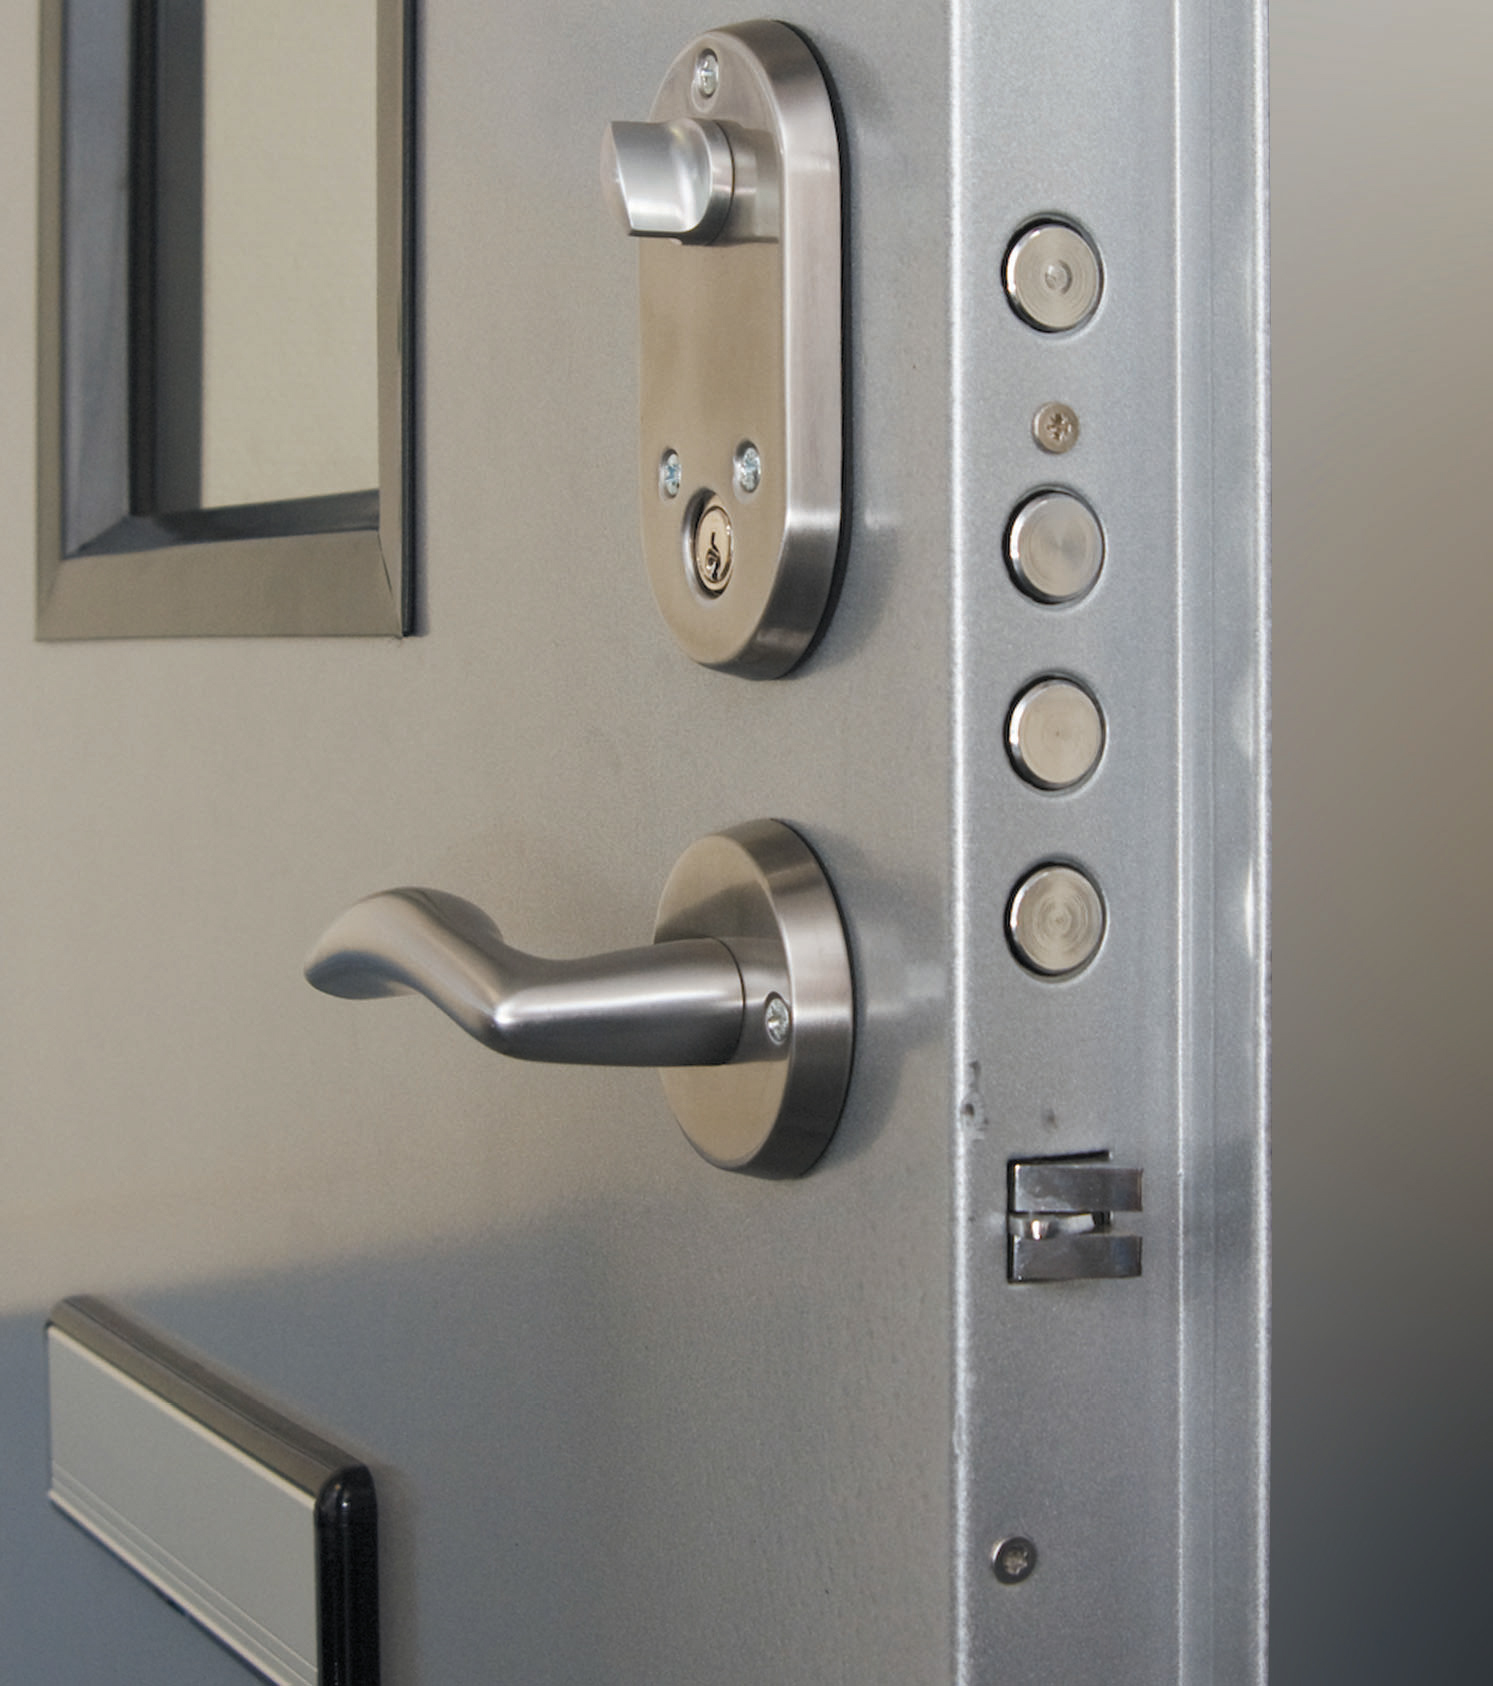 Interior door security systems provide you 247 safety